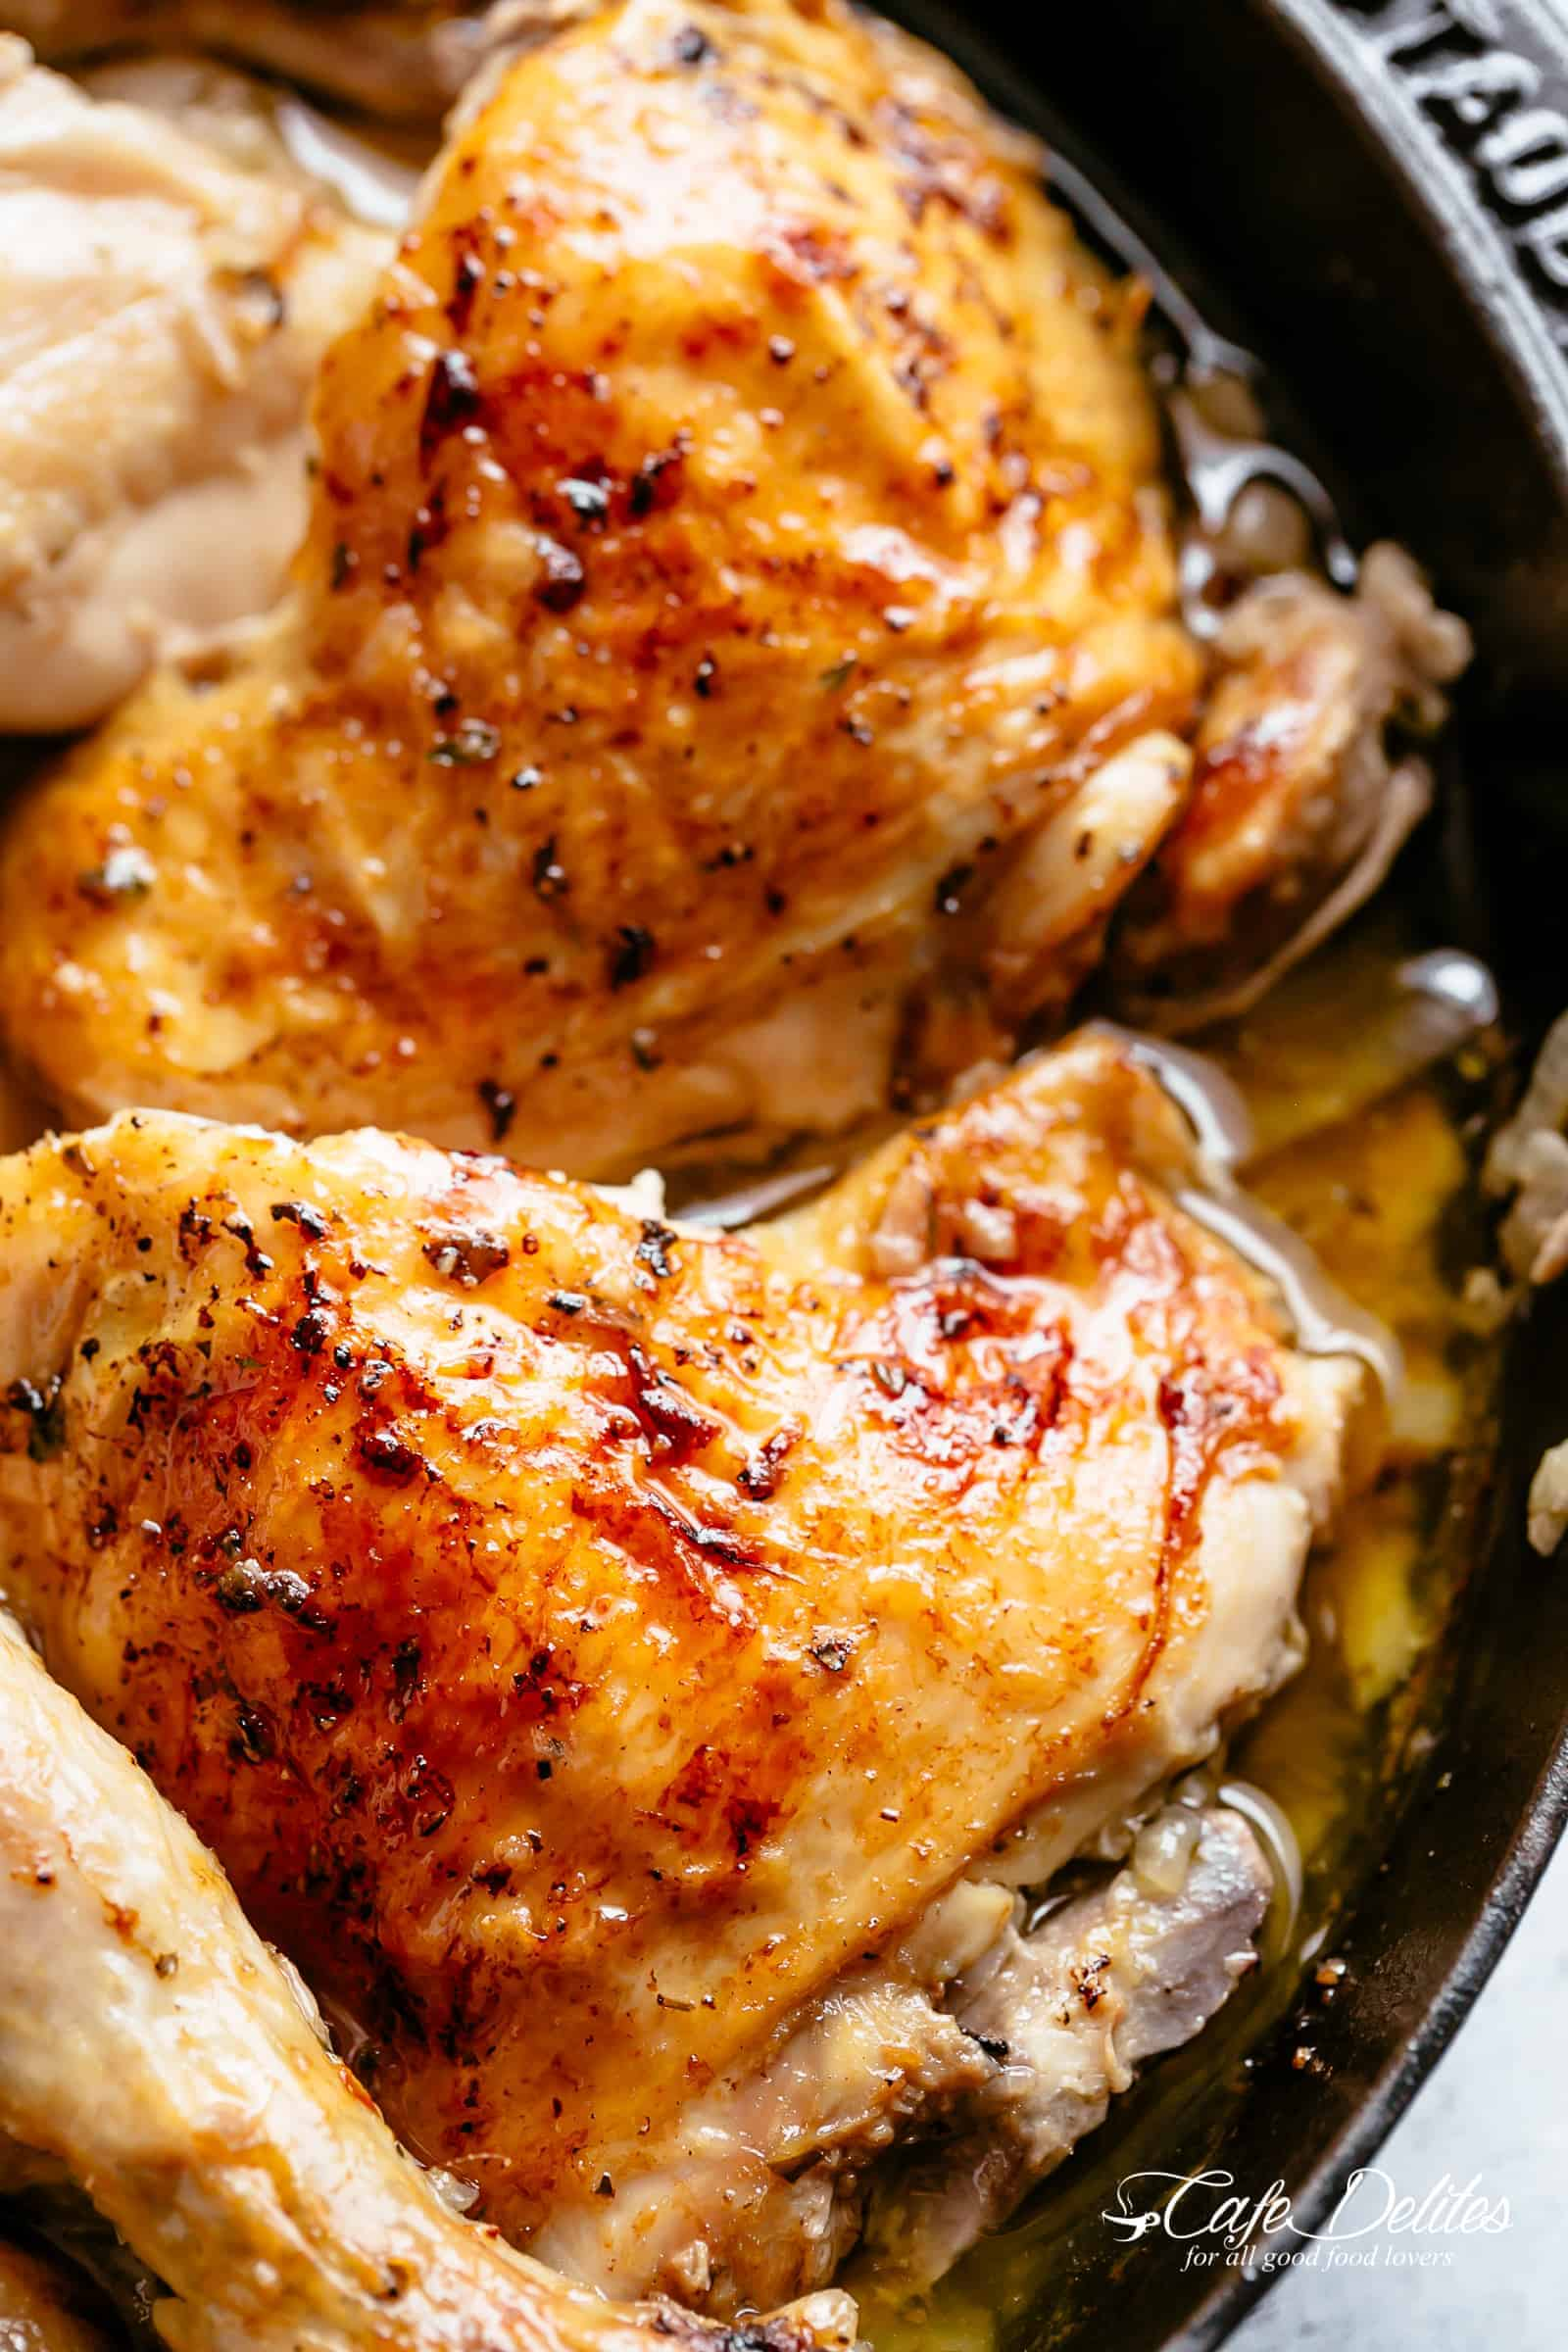 Tender and juicy Lemon Garlic Roast Chicken with crispy, rich and flavourful skin, so much flavour and easy to find ingredients! Garlic, onions, lemons, olive oil, fresh herbs and a splash of white wine make this one amazing roast chicken recipe! | cafedelites.com